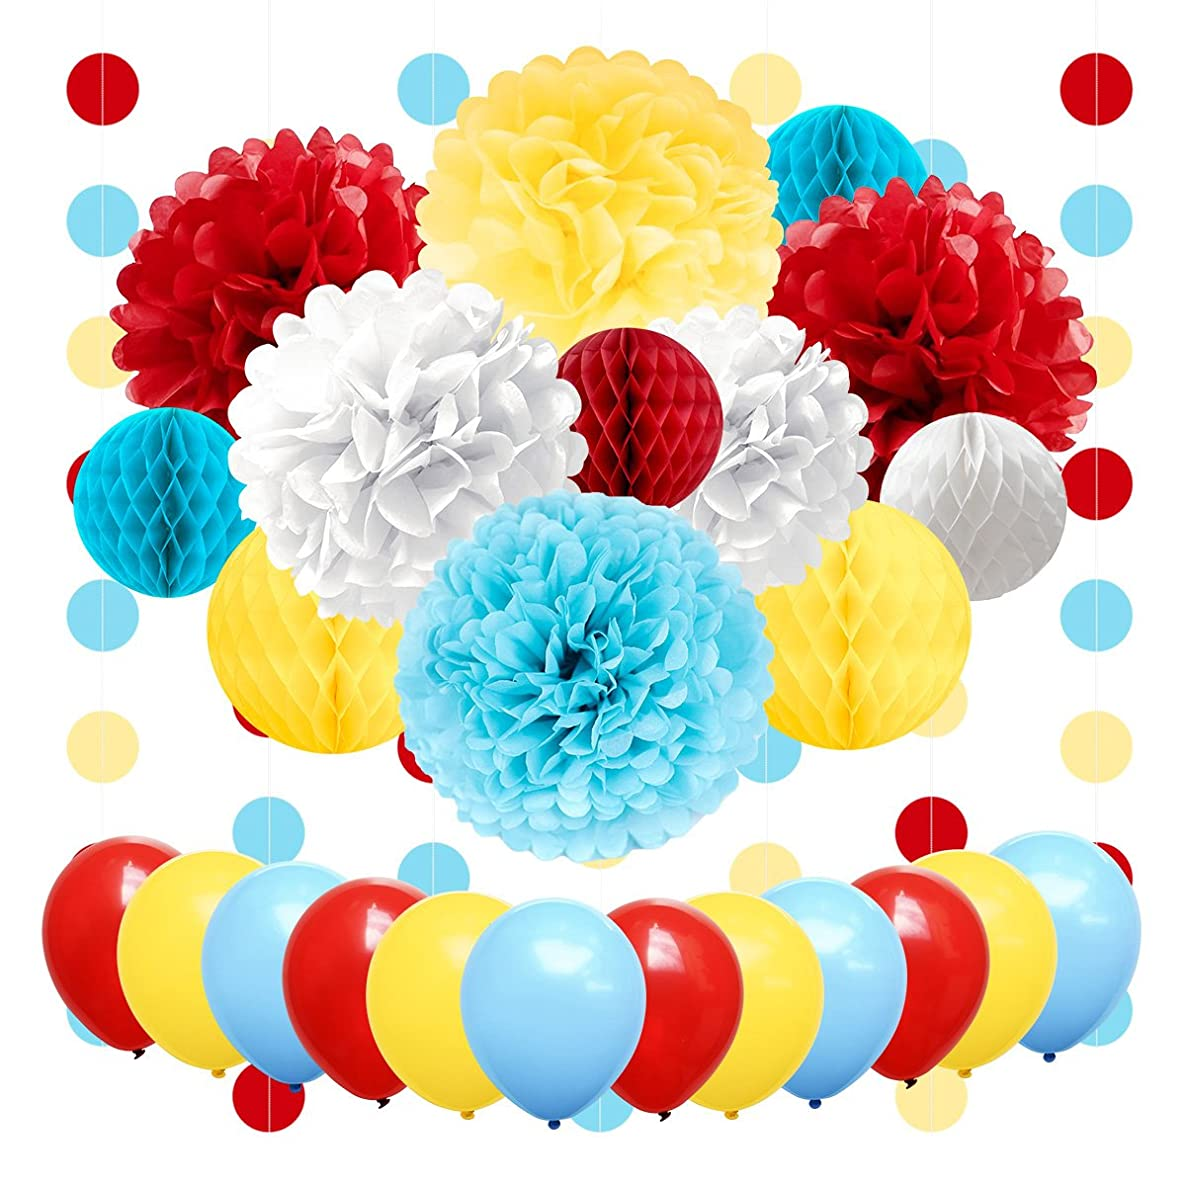 NICROLANDEE Carnival Party Supplies Birthday Balloon Tissue Paper Flowers Pom Poms Honeycomb Ball Circle Dots Hanging Garland Banner for Circus Baby Shower Clown Backdrop Beach Kids Party Decorations